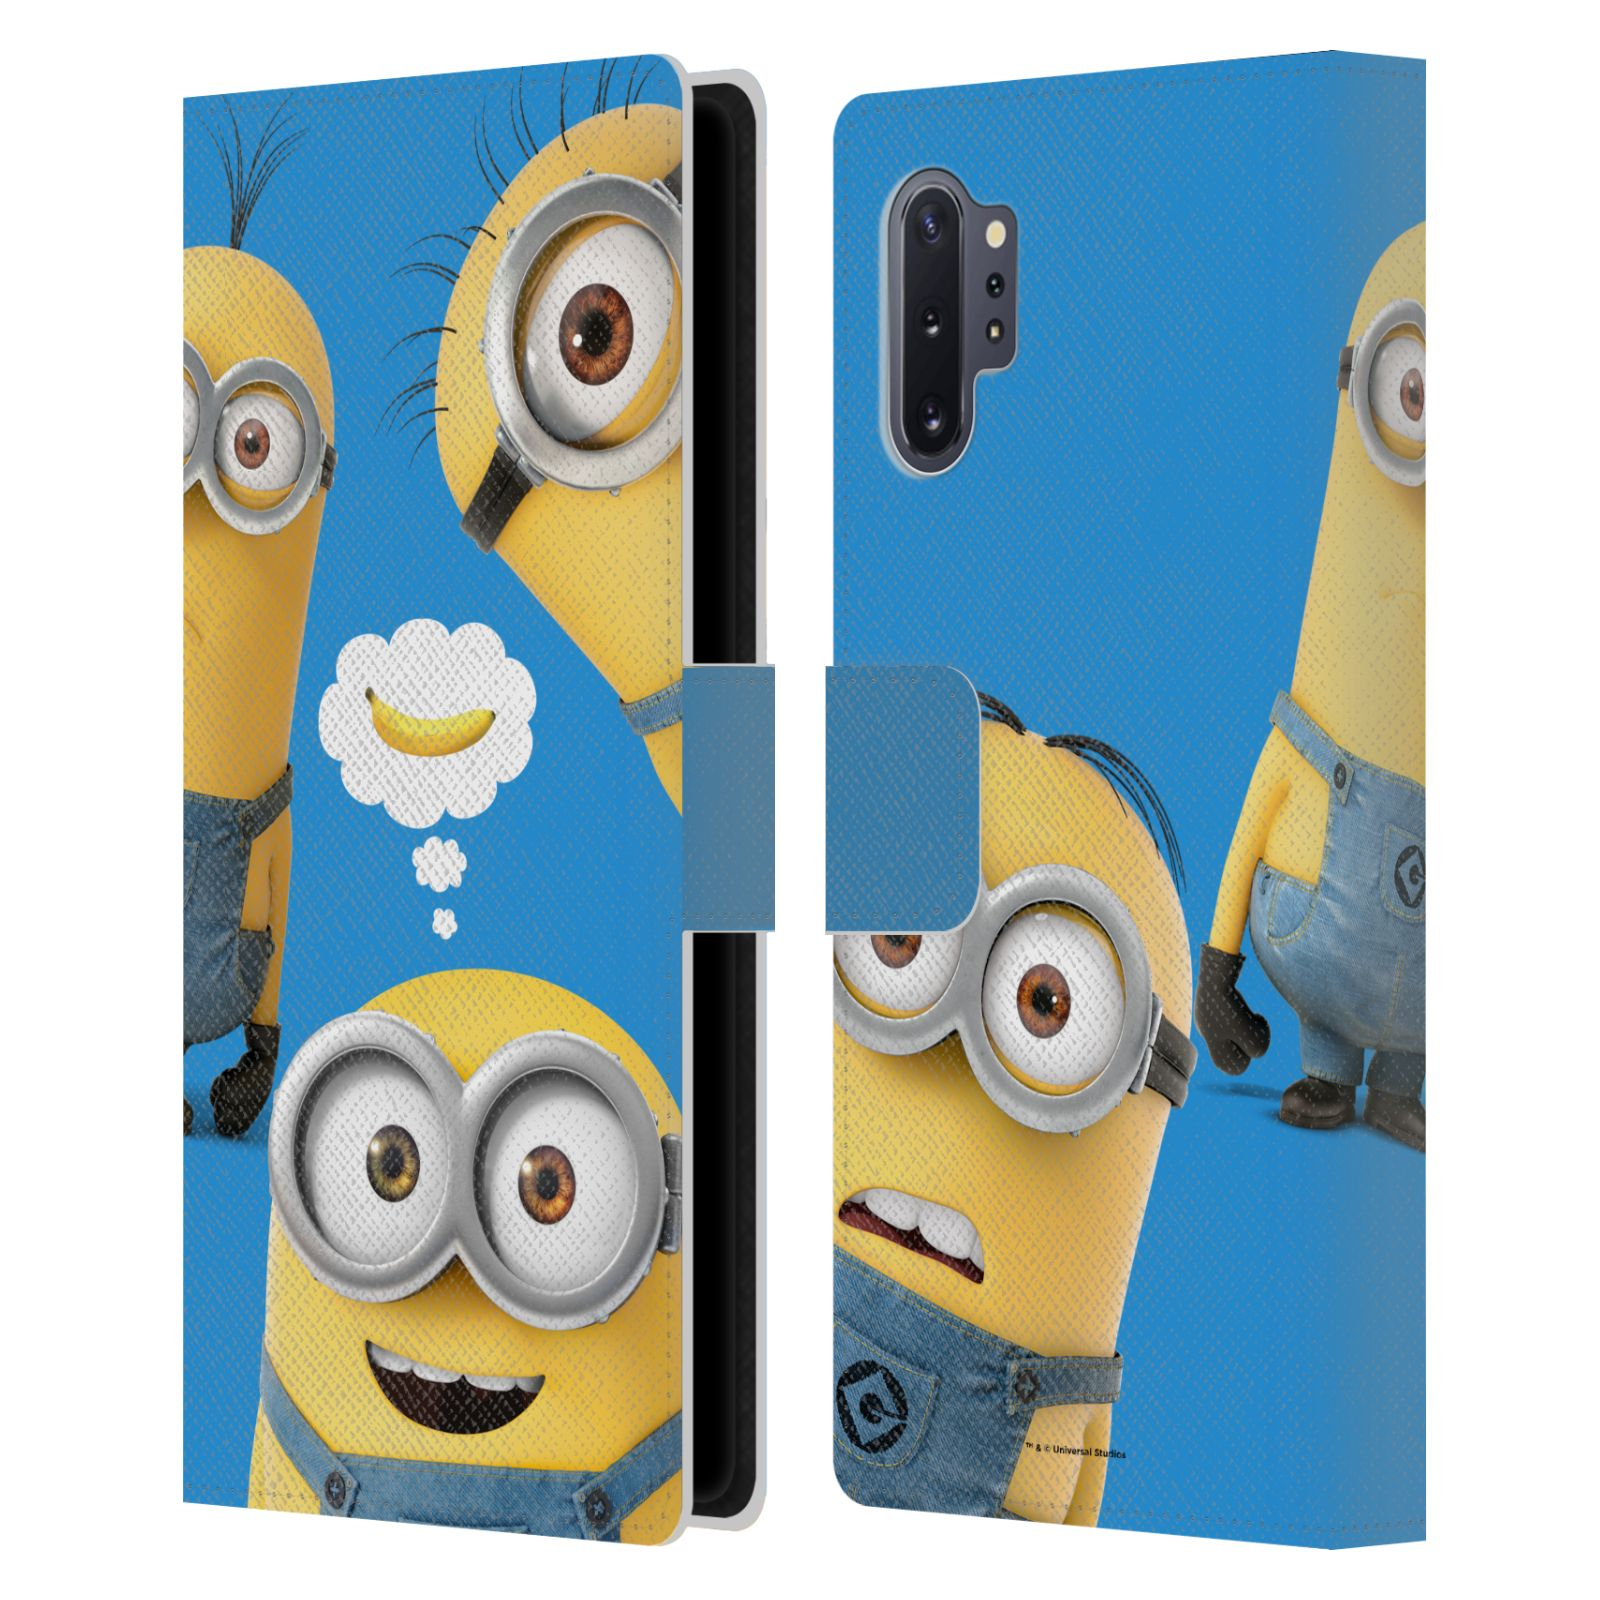 Cartoon Despicable Me Minions Waterproof Printing Shower Blind